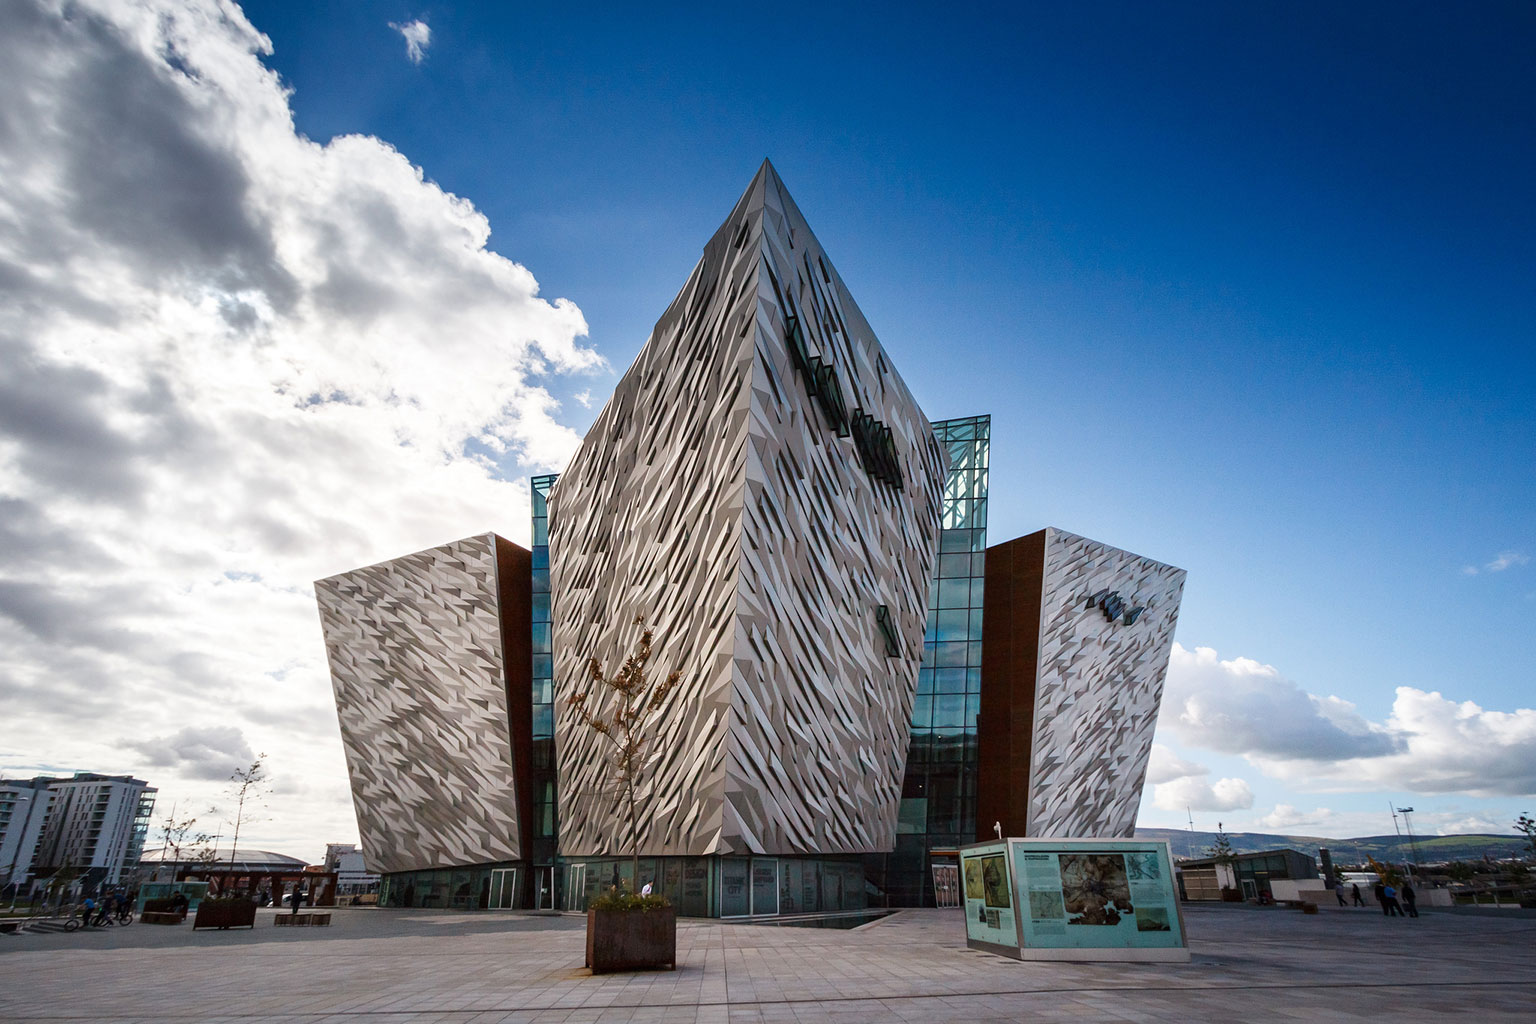 Photograph of Titanic Belfast by Nico Kaiser